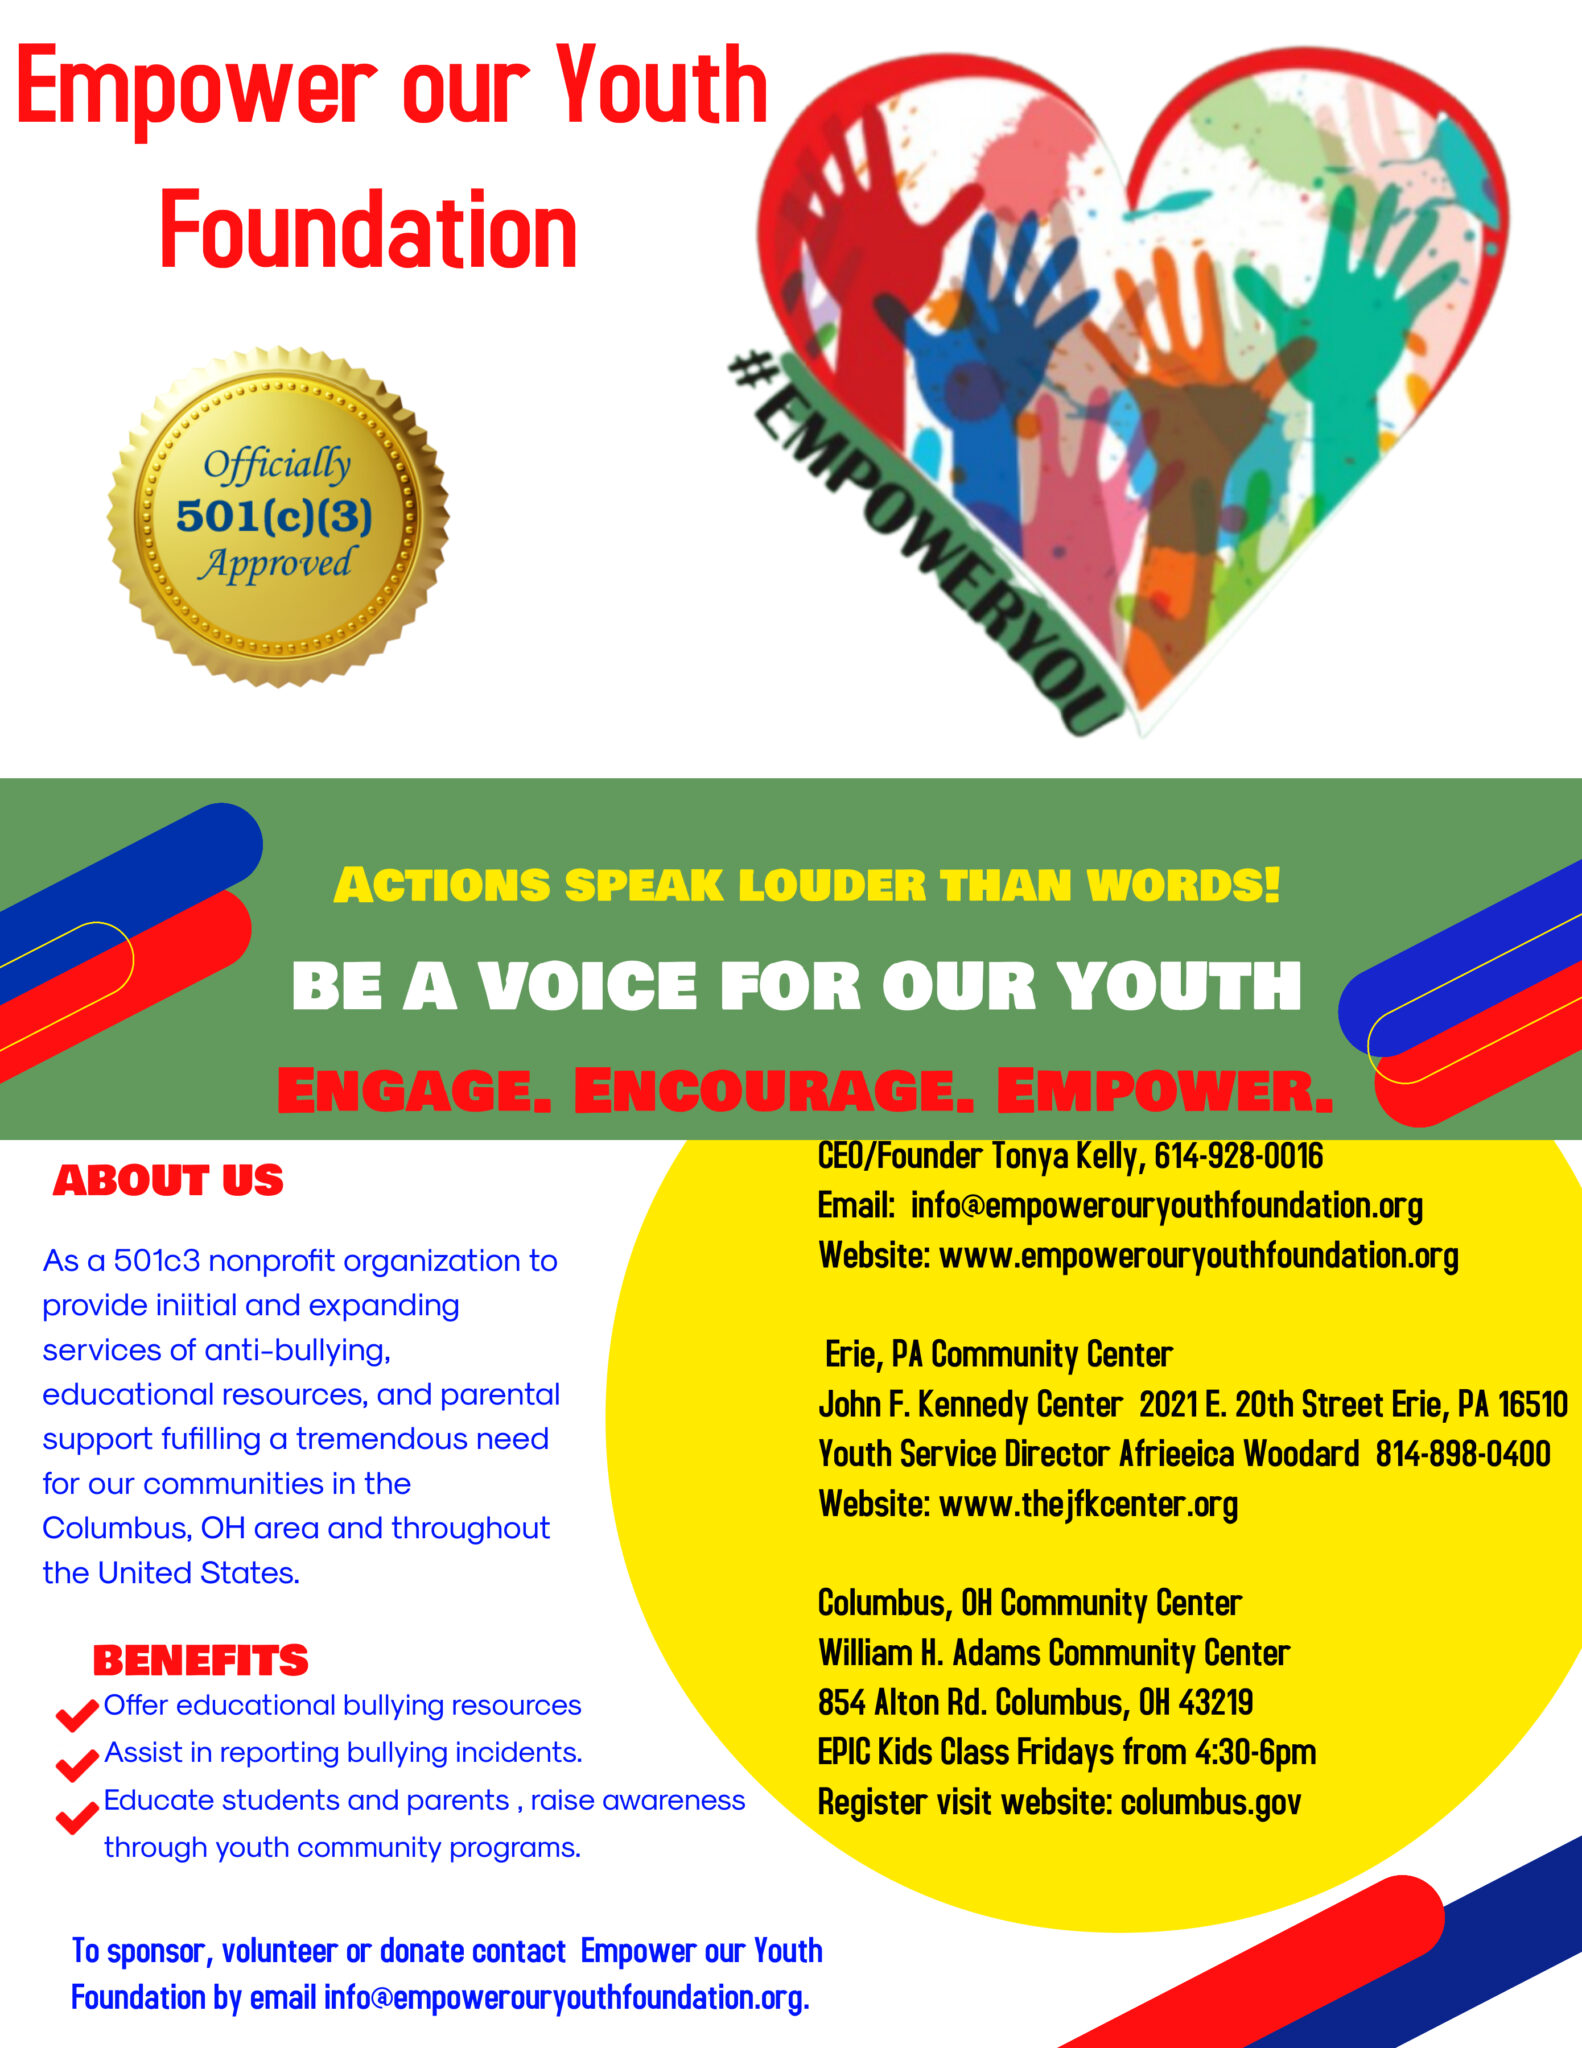 Empower our Youth Foundation (3)